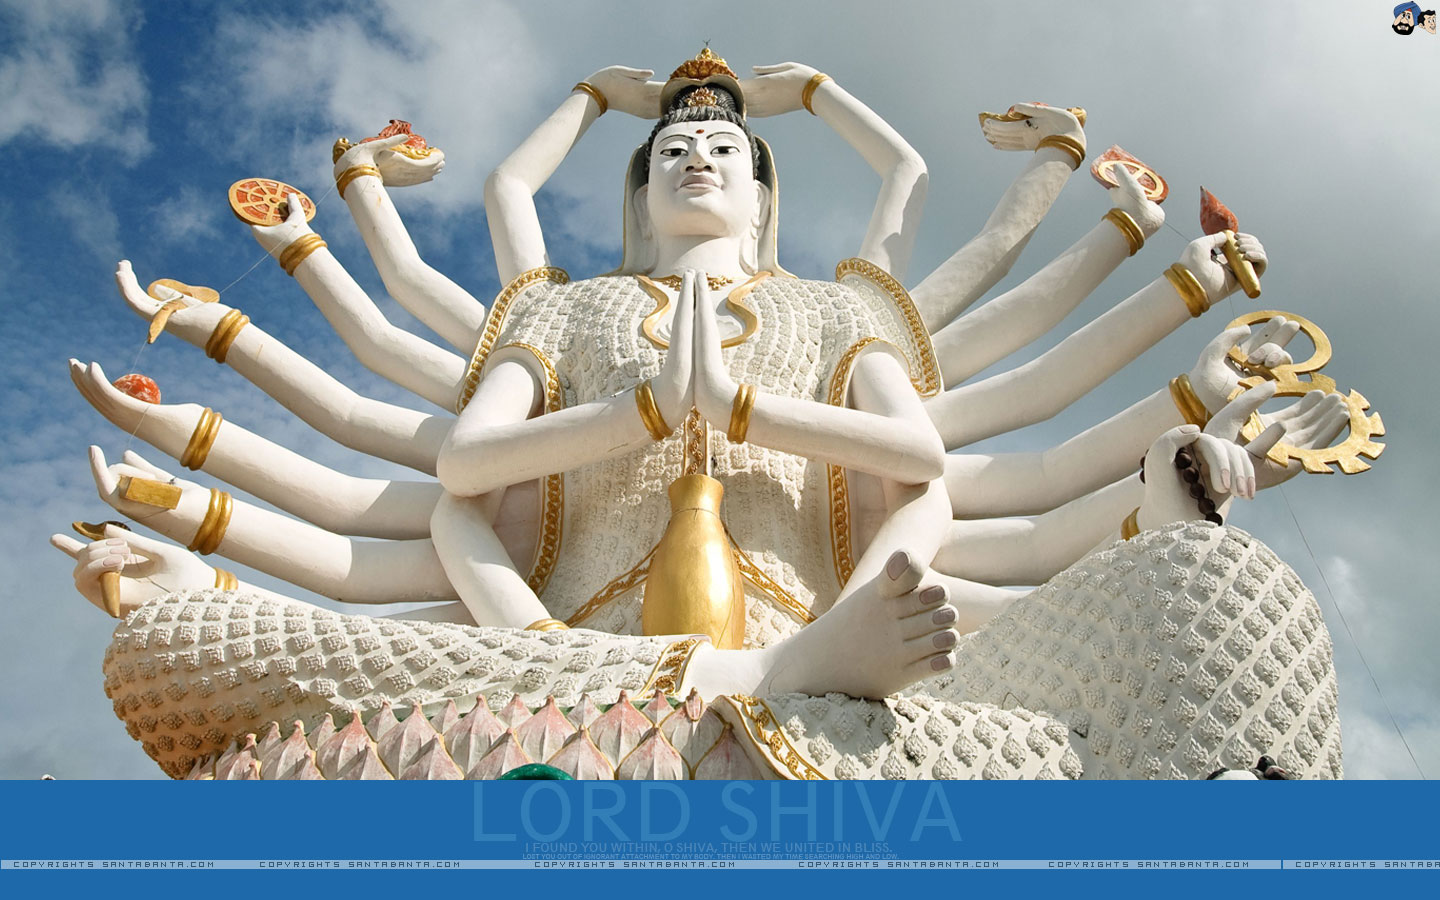 Lord Shiva Wallpapers 3d: God Wallpapers - Wallpapers